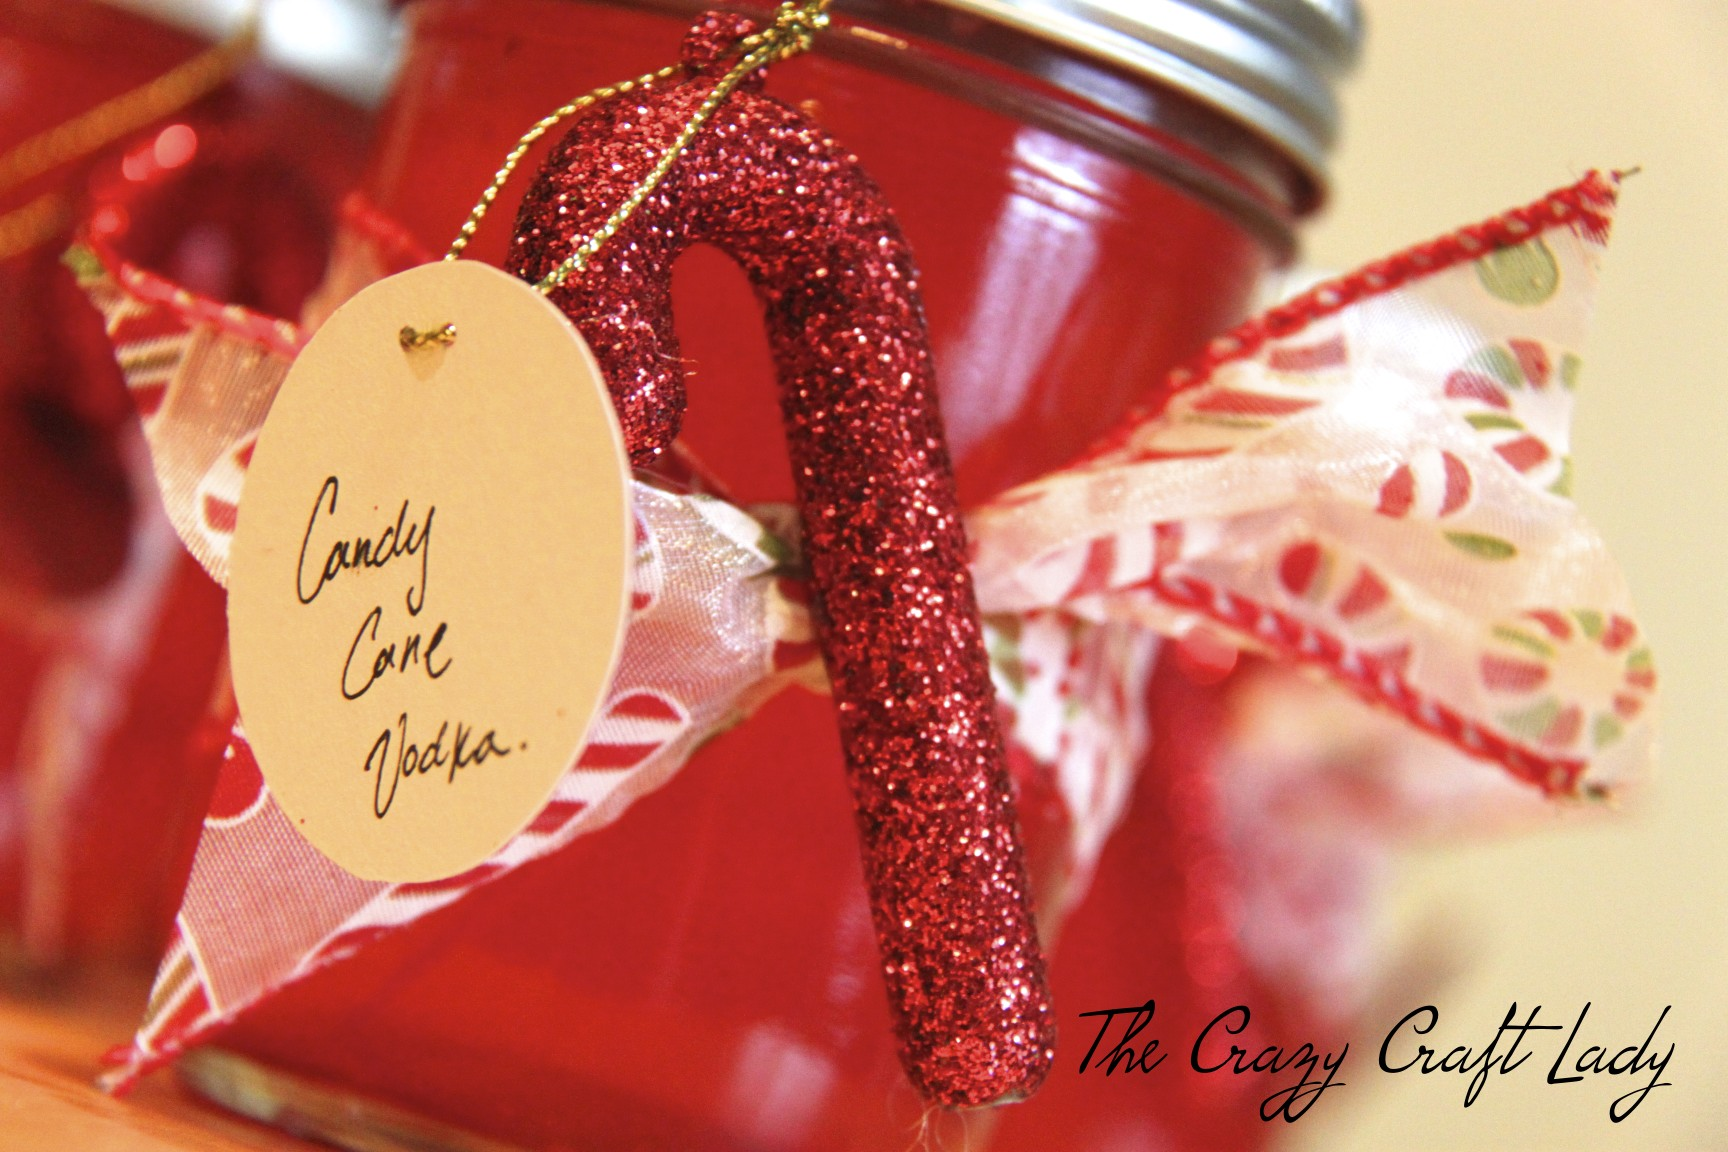 How to make Candy Cane Vodka – A Fun, Boozy, Christmas Treat